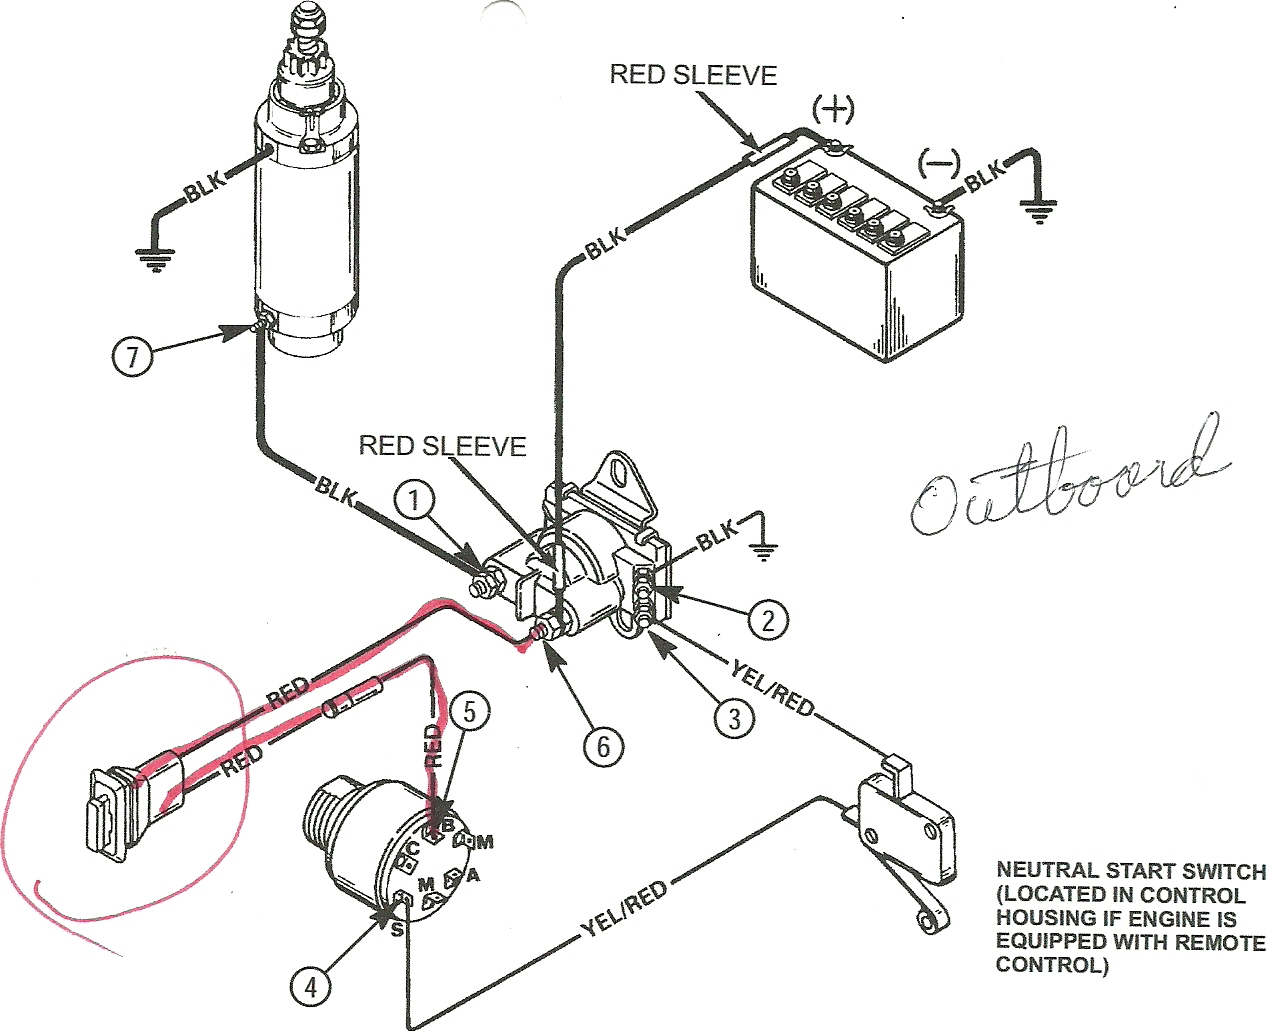 35 Hp Evinrude Starter Solenoid Wiring Diagram 1996 Evinrude Wiring Johnson  Outboard Motor Wiring Diagram Johnson Outboard Starter Diagram